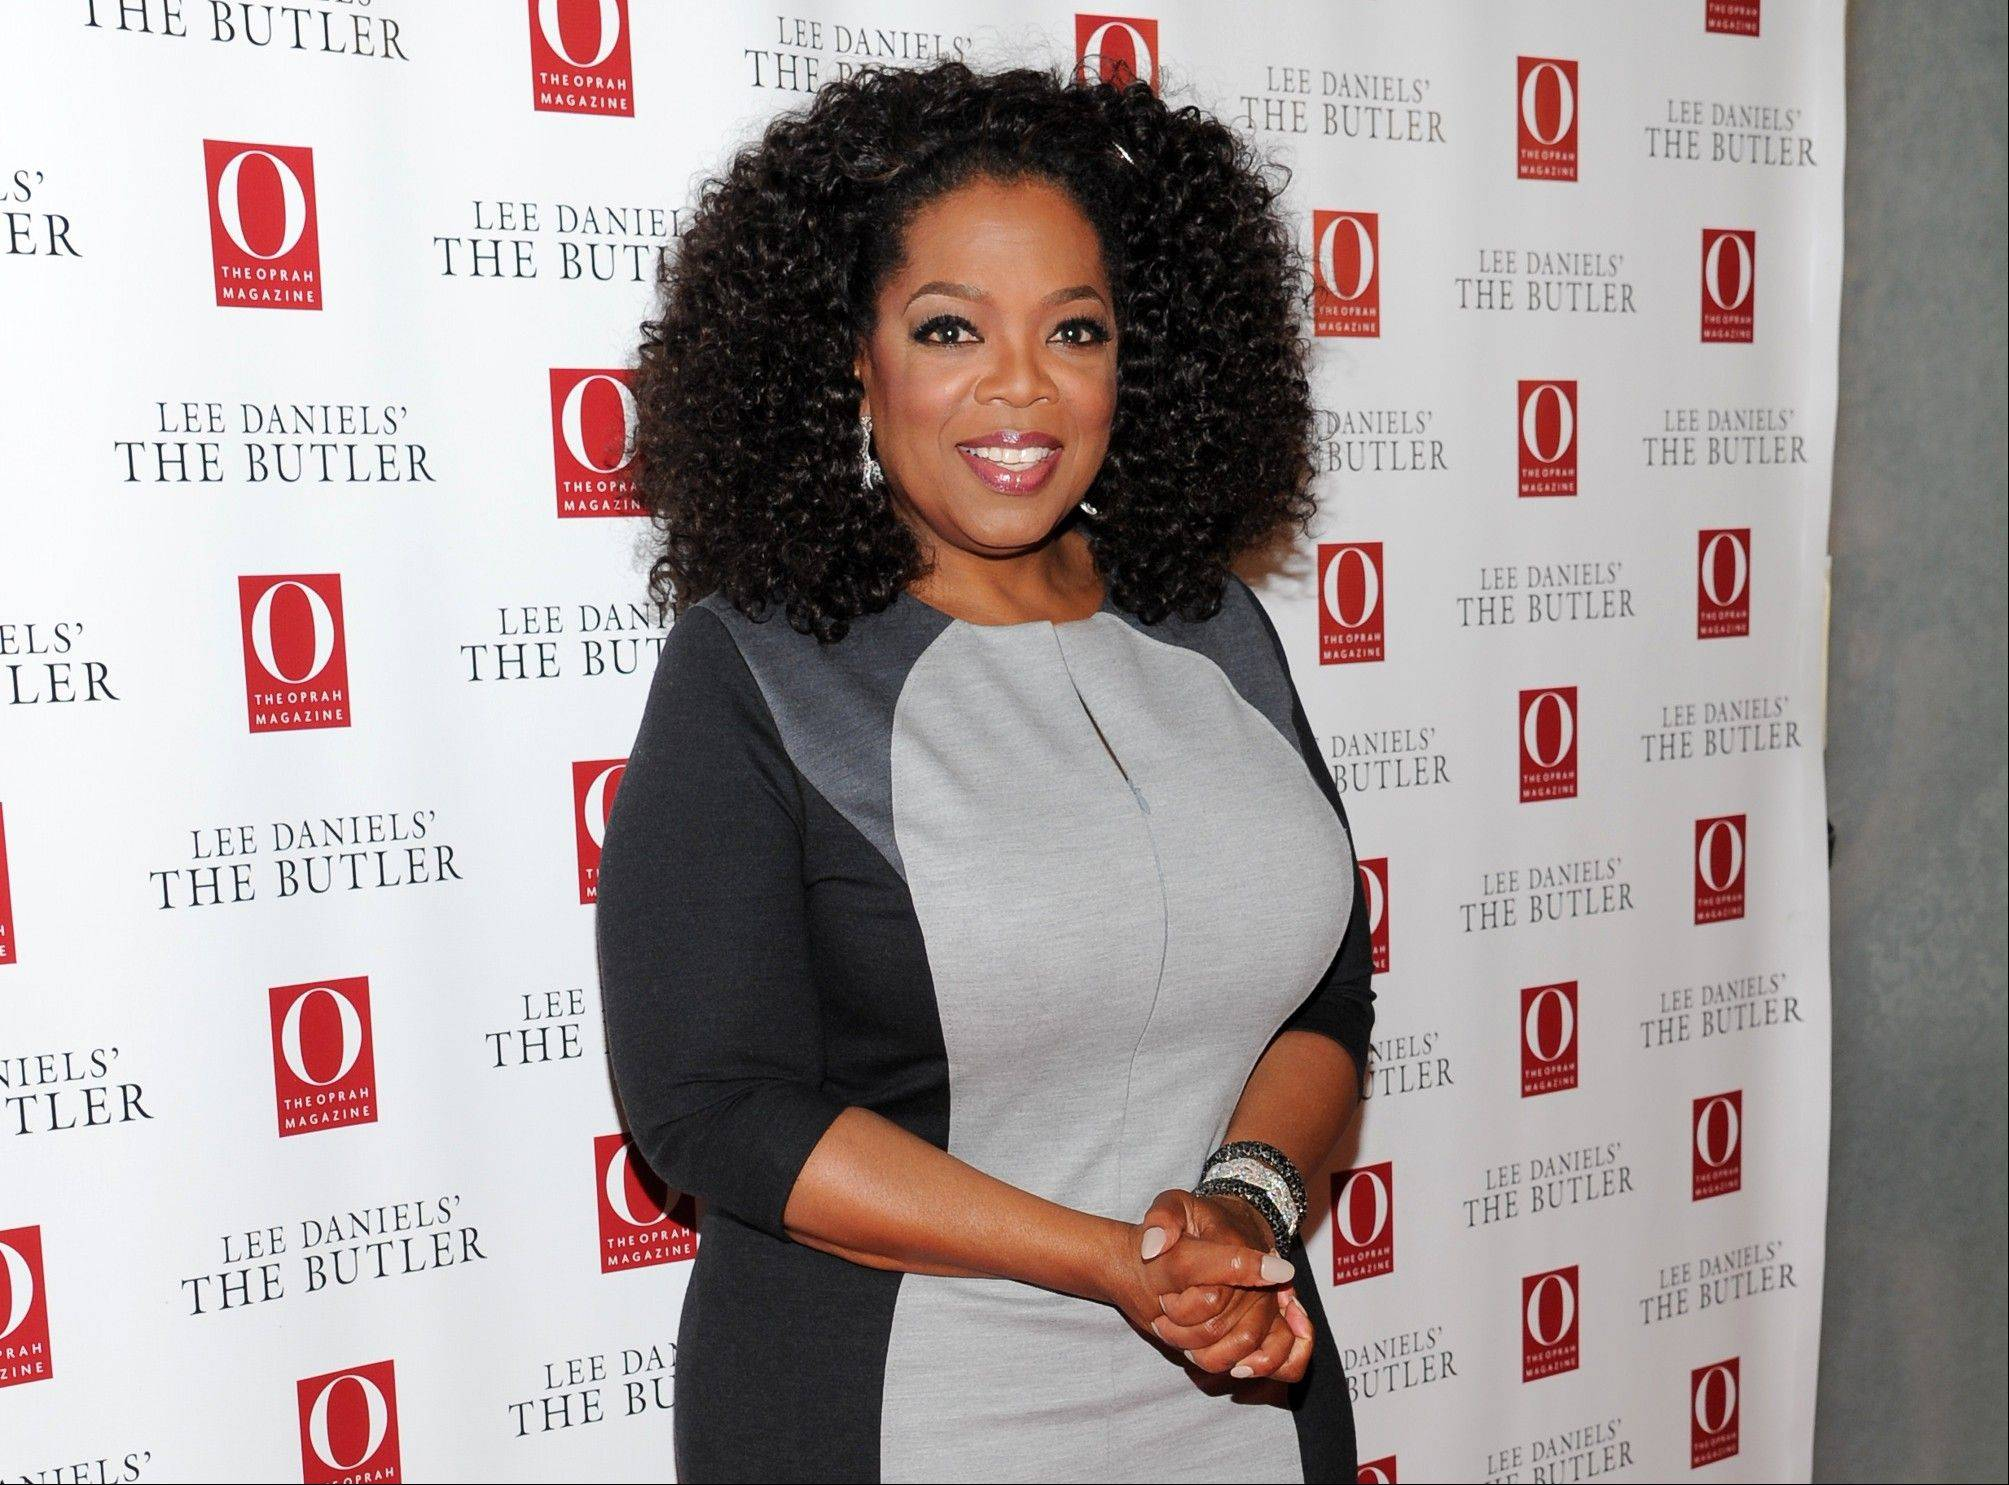 """I thought it (""The Butler"") was an important story to tell, even though I was in the midst of cra-a-a-zy business with my network,"" Oprah Winfrey says."